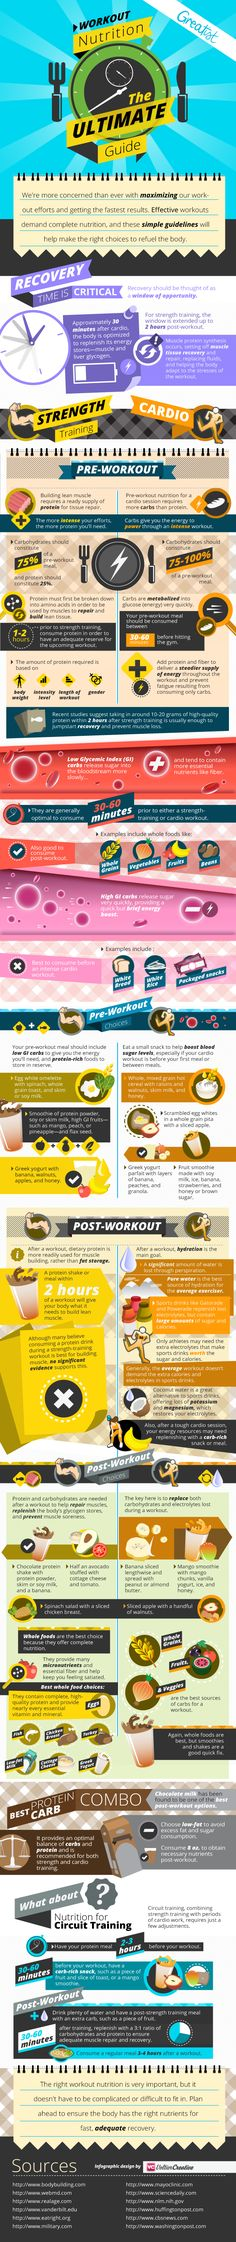 The Complete Guide to Workout Nutrition. Just ignore the parts that recommend soy.